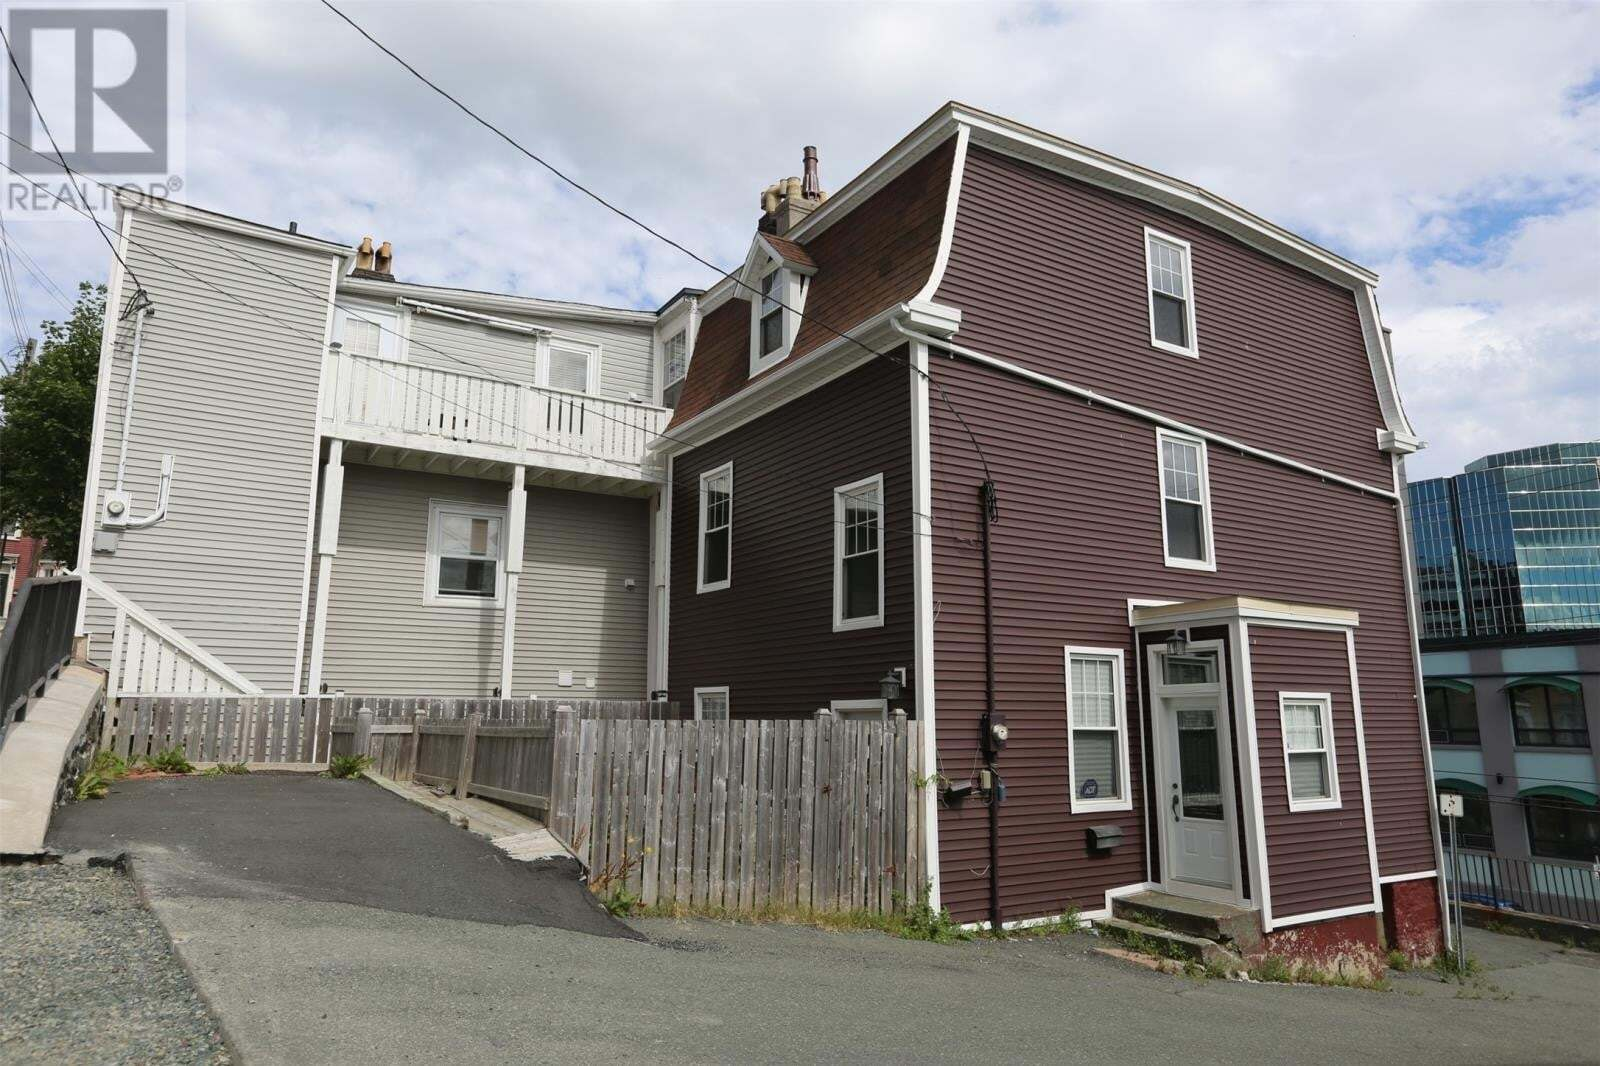 House for sale at 360 Duckworth St St. John's Newfoundland - MLS: 1222461